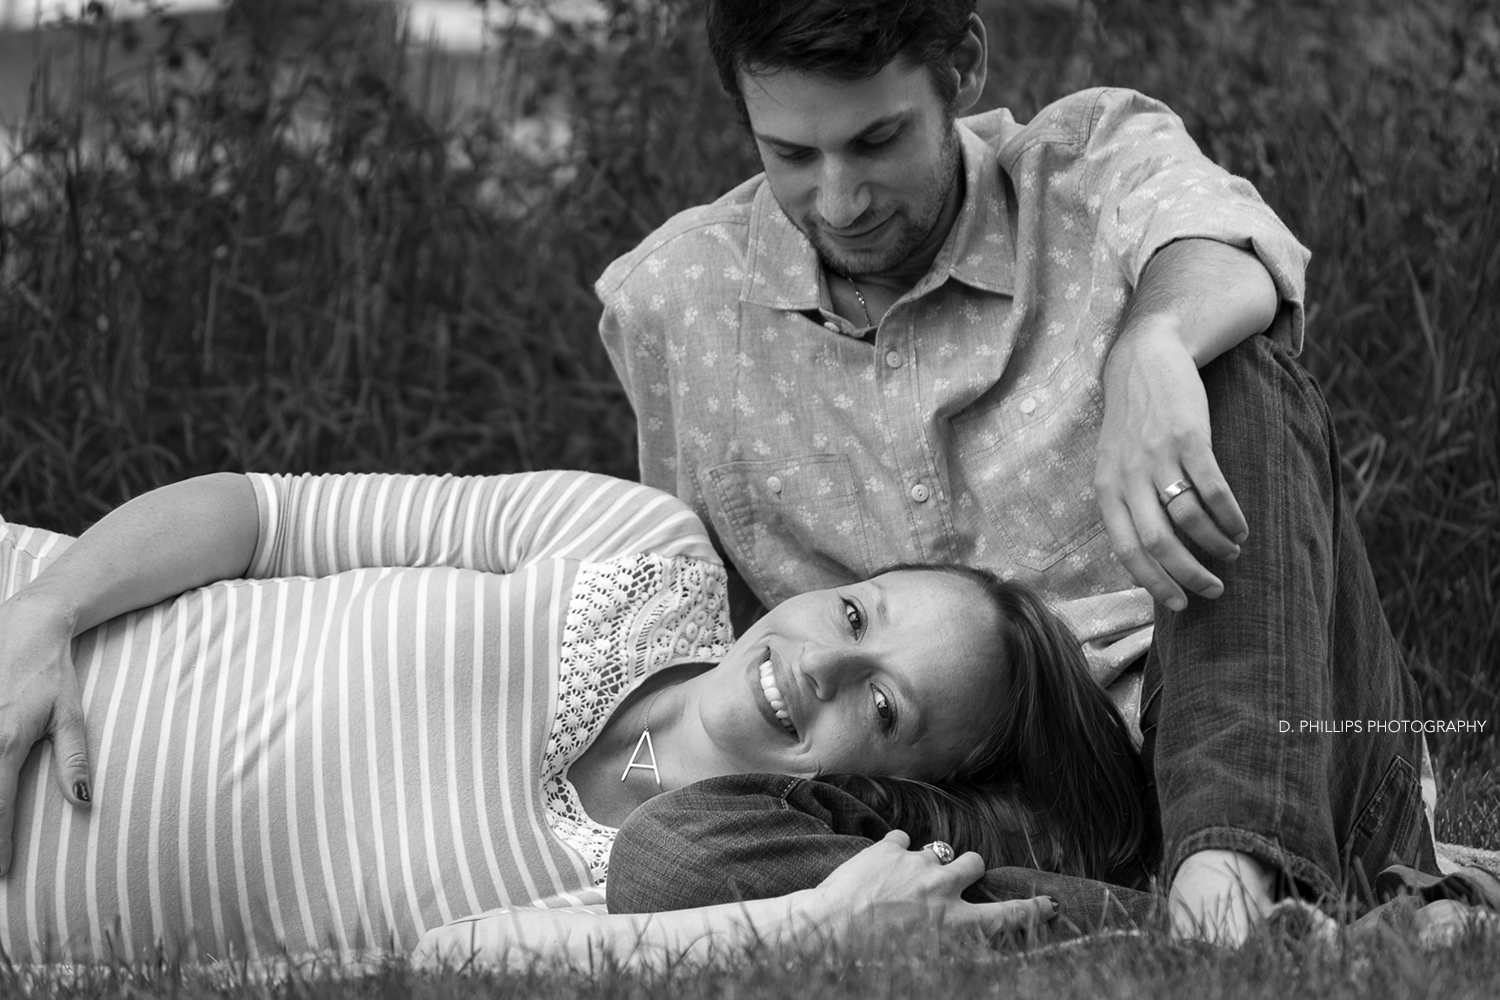 Maternity photography in Clarksville, TN   D. Phillips Photography